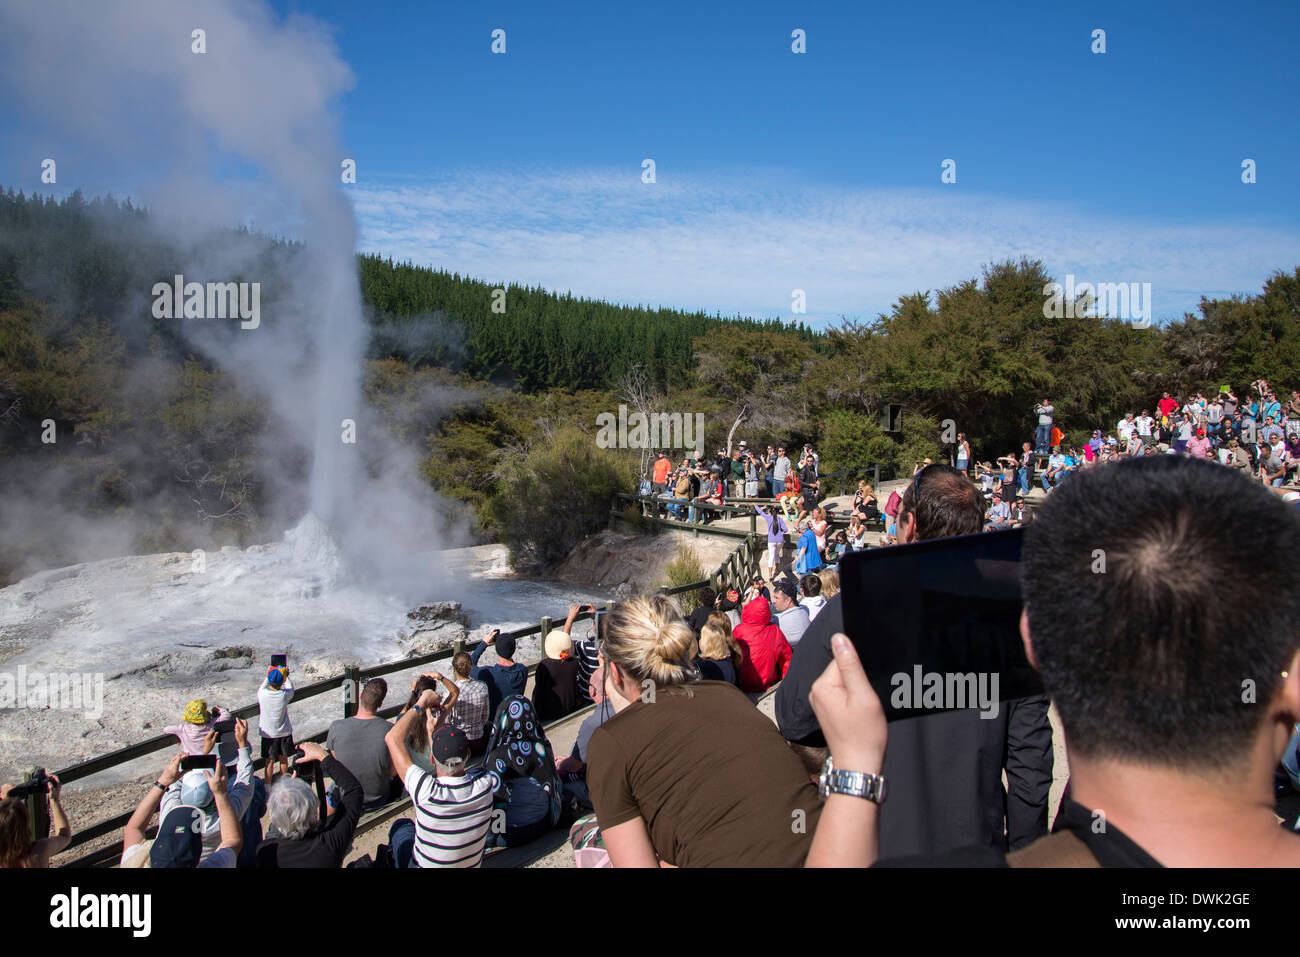 people watching lady knox geyser erupt while taking pictures with cameras and tablets - Stock Image